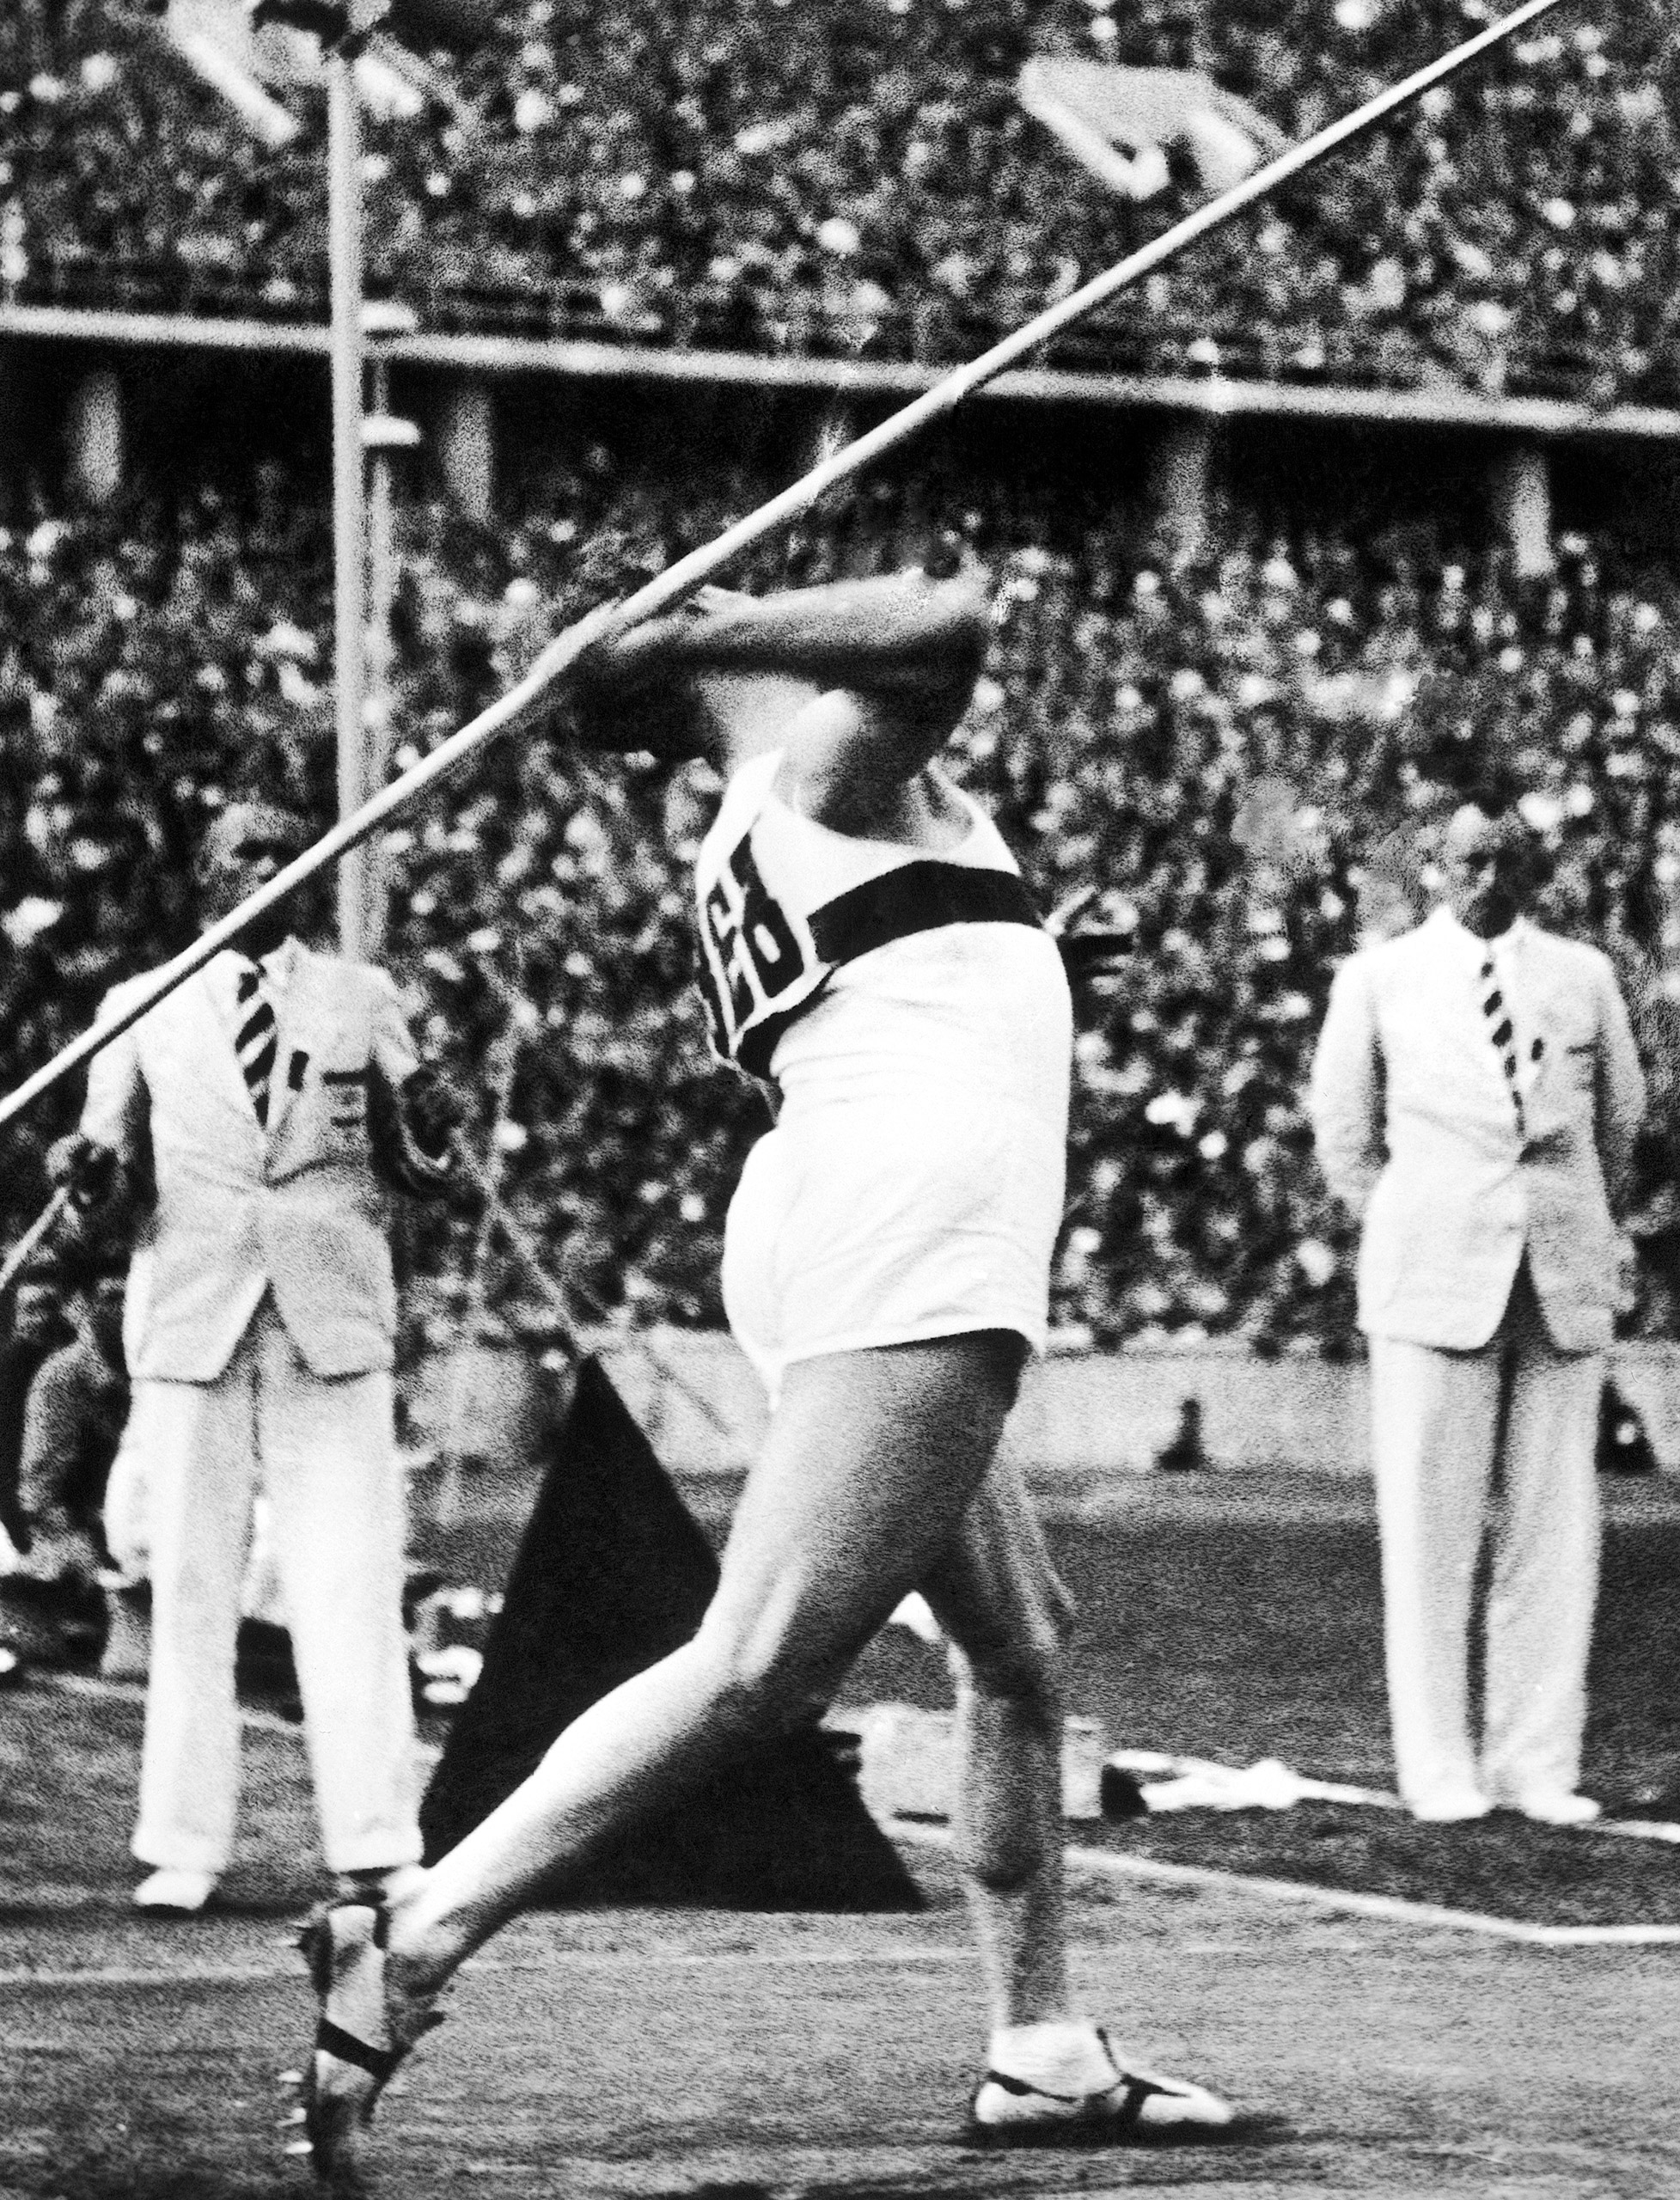 Winner of the men's javelin throw event at the Summer Olympic Games, German athlete Gerhard Stoeck. in action on Aug. 6, 1936 in Berlin